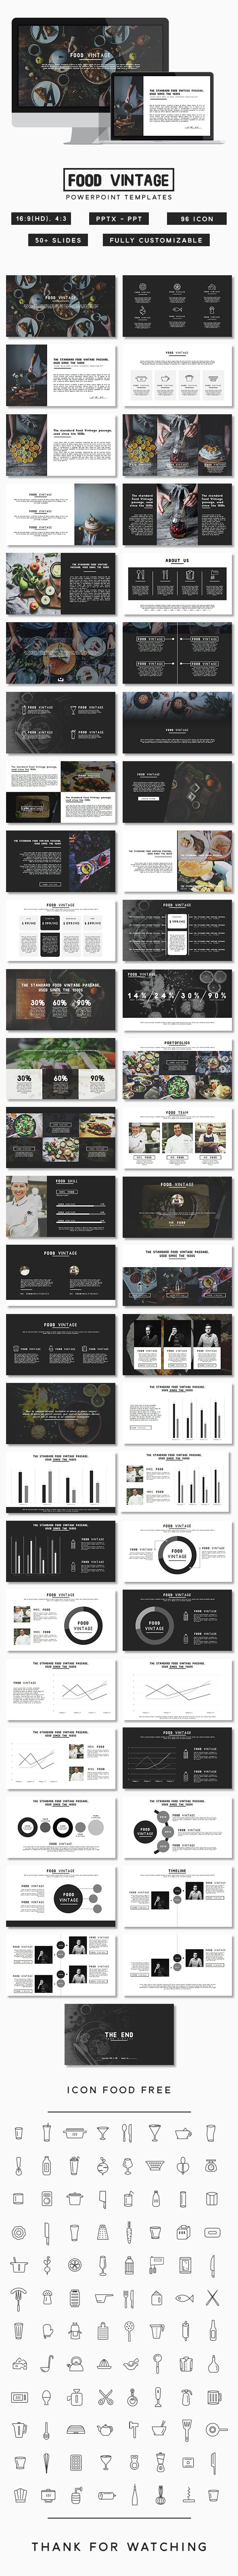 Food Vintage Presentation (PowerPoint Templates)                                                                                                                                                                                 More